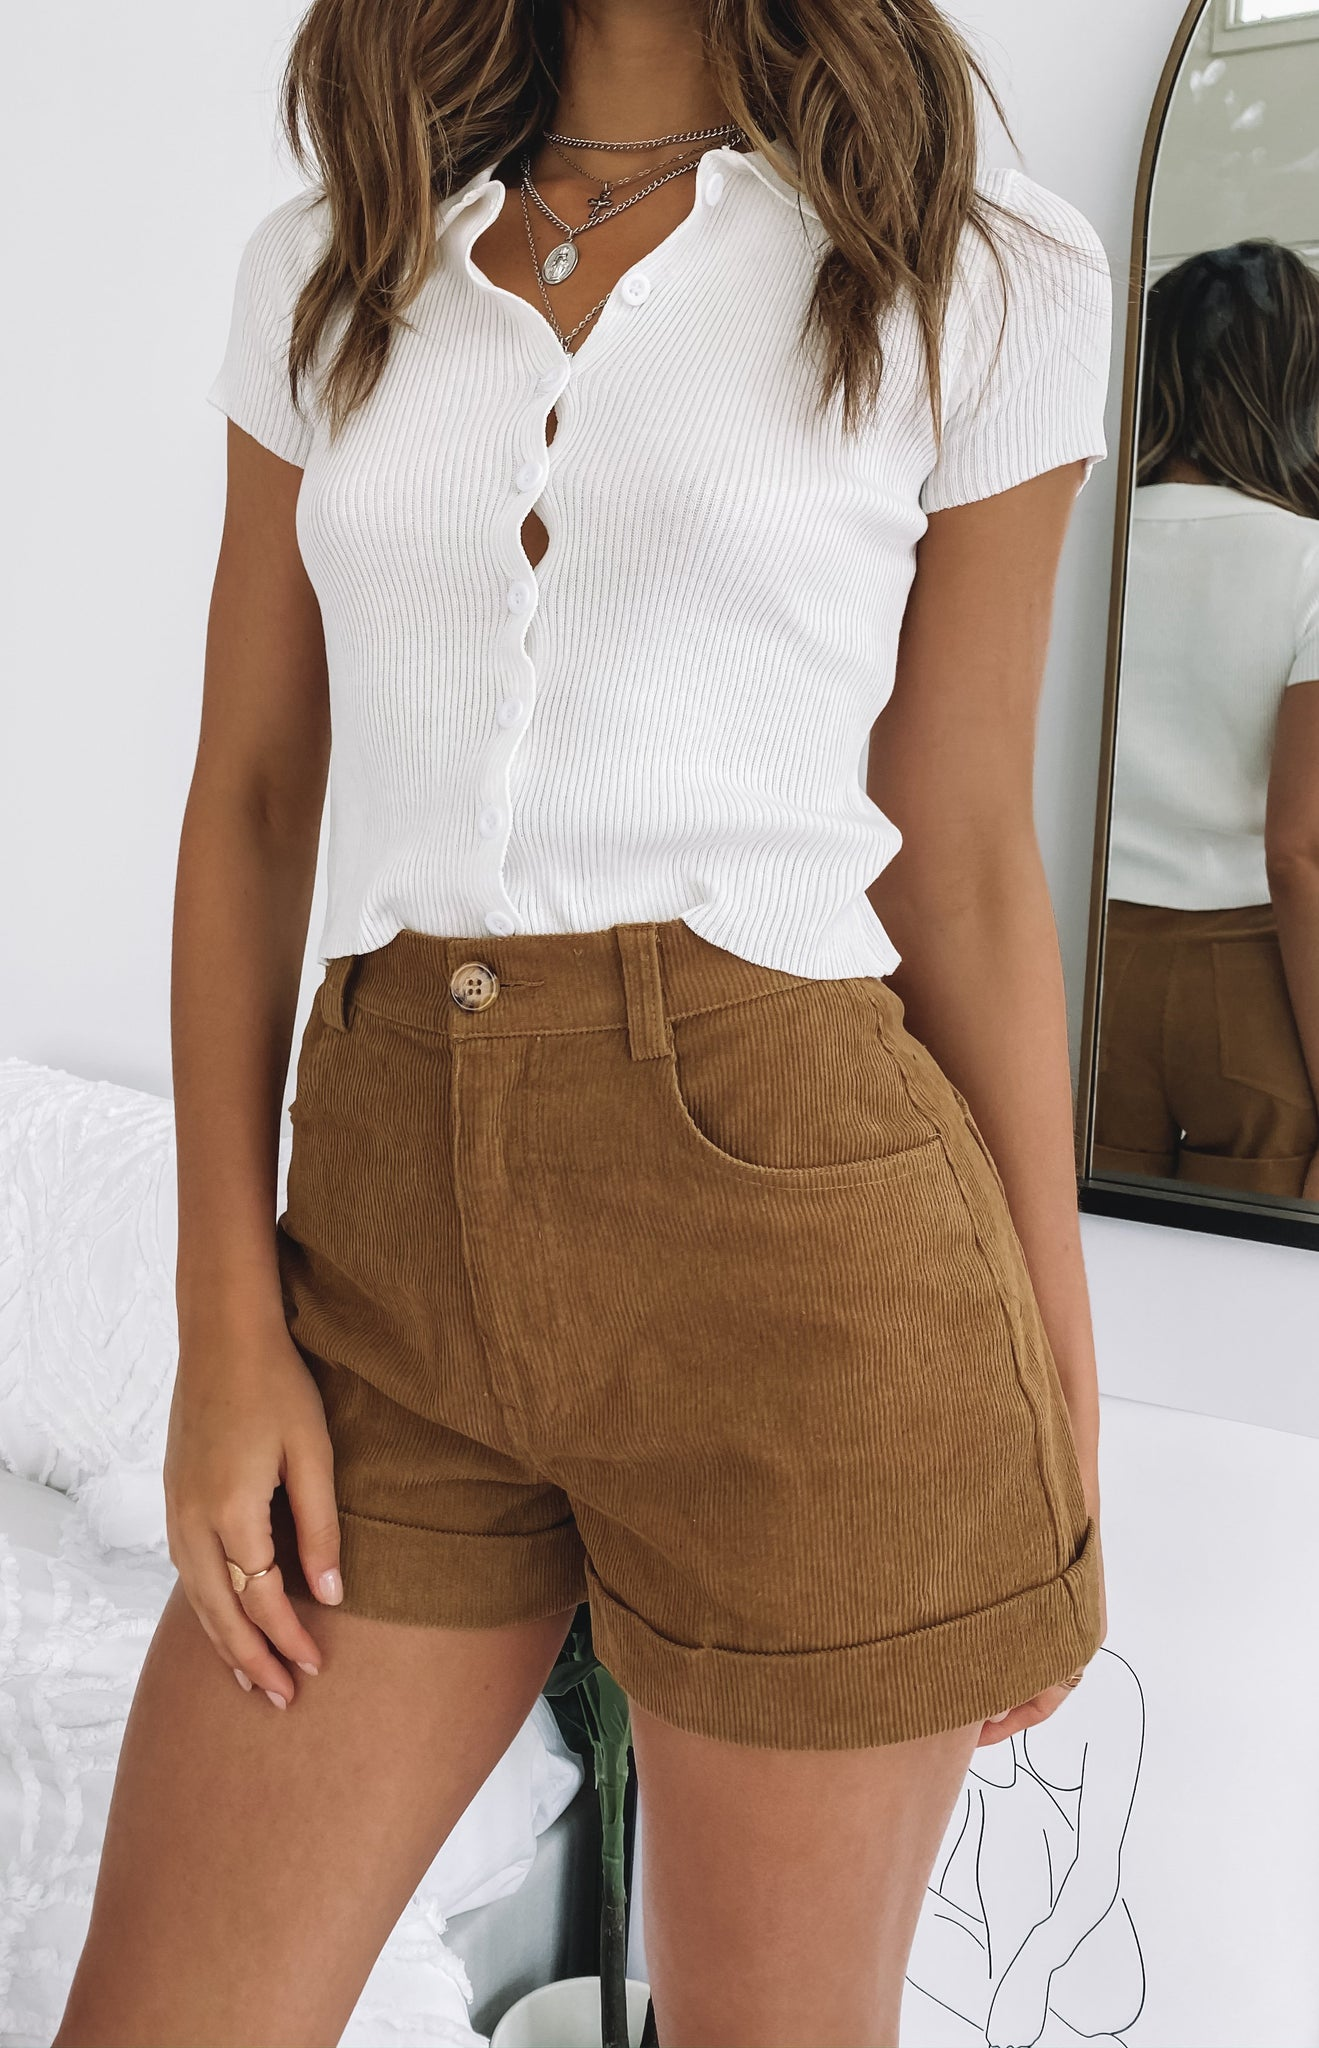 Beyond Her Alanis Cord Shorts Tan